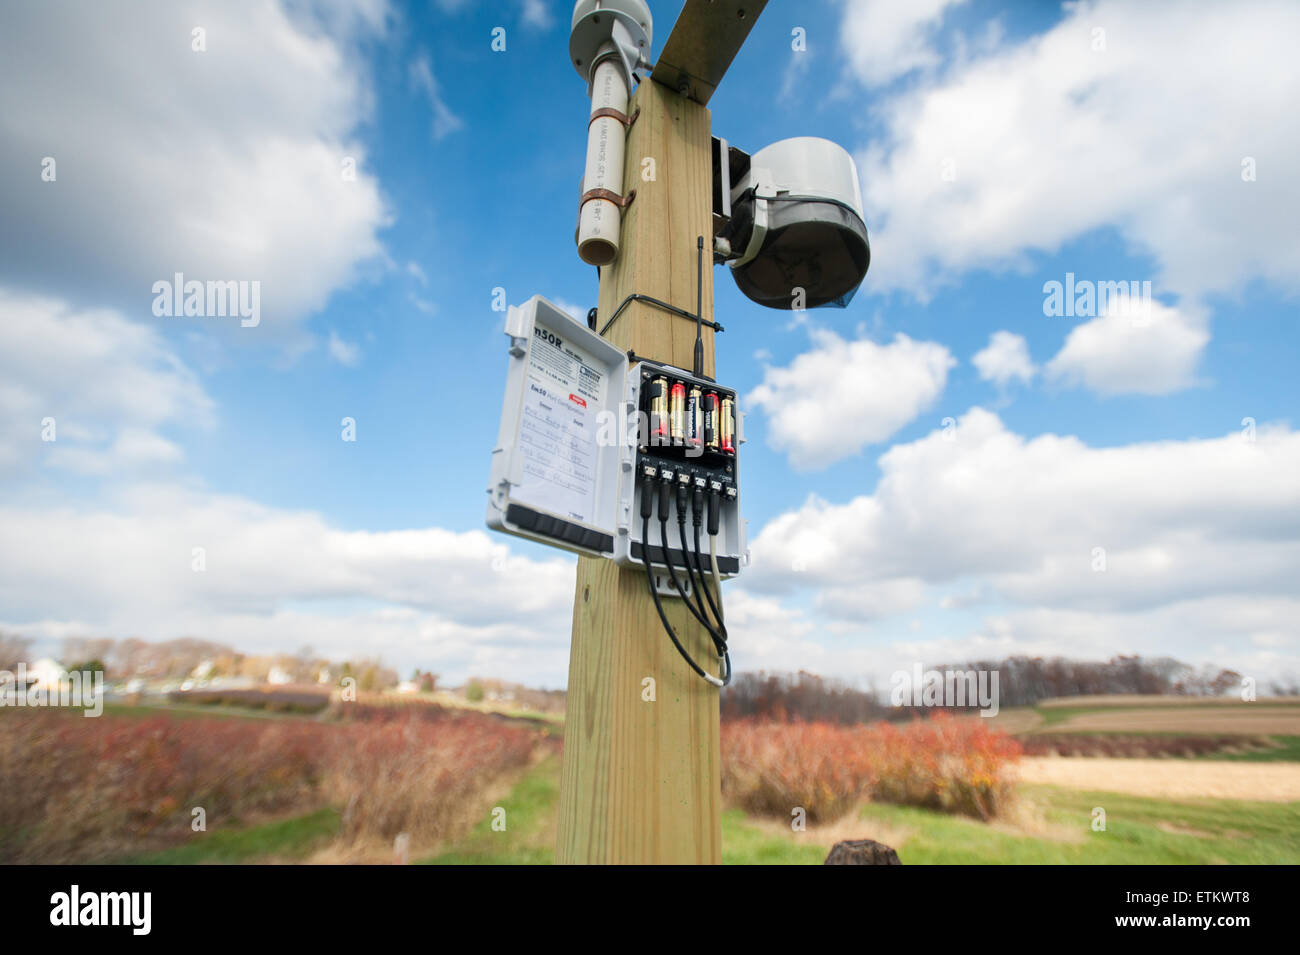 Moisture sensing unit at an orchard in Montgomery County, Maryland, USA - Stock Image